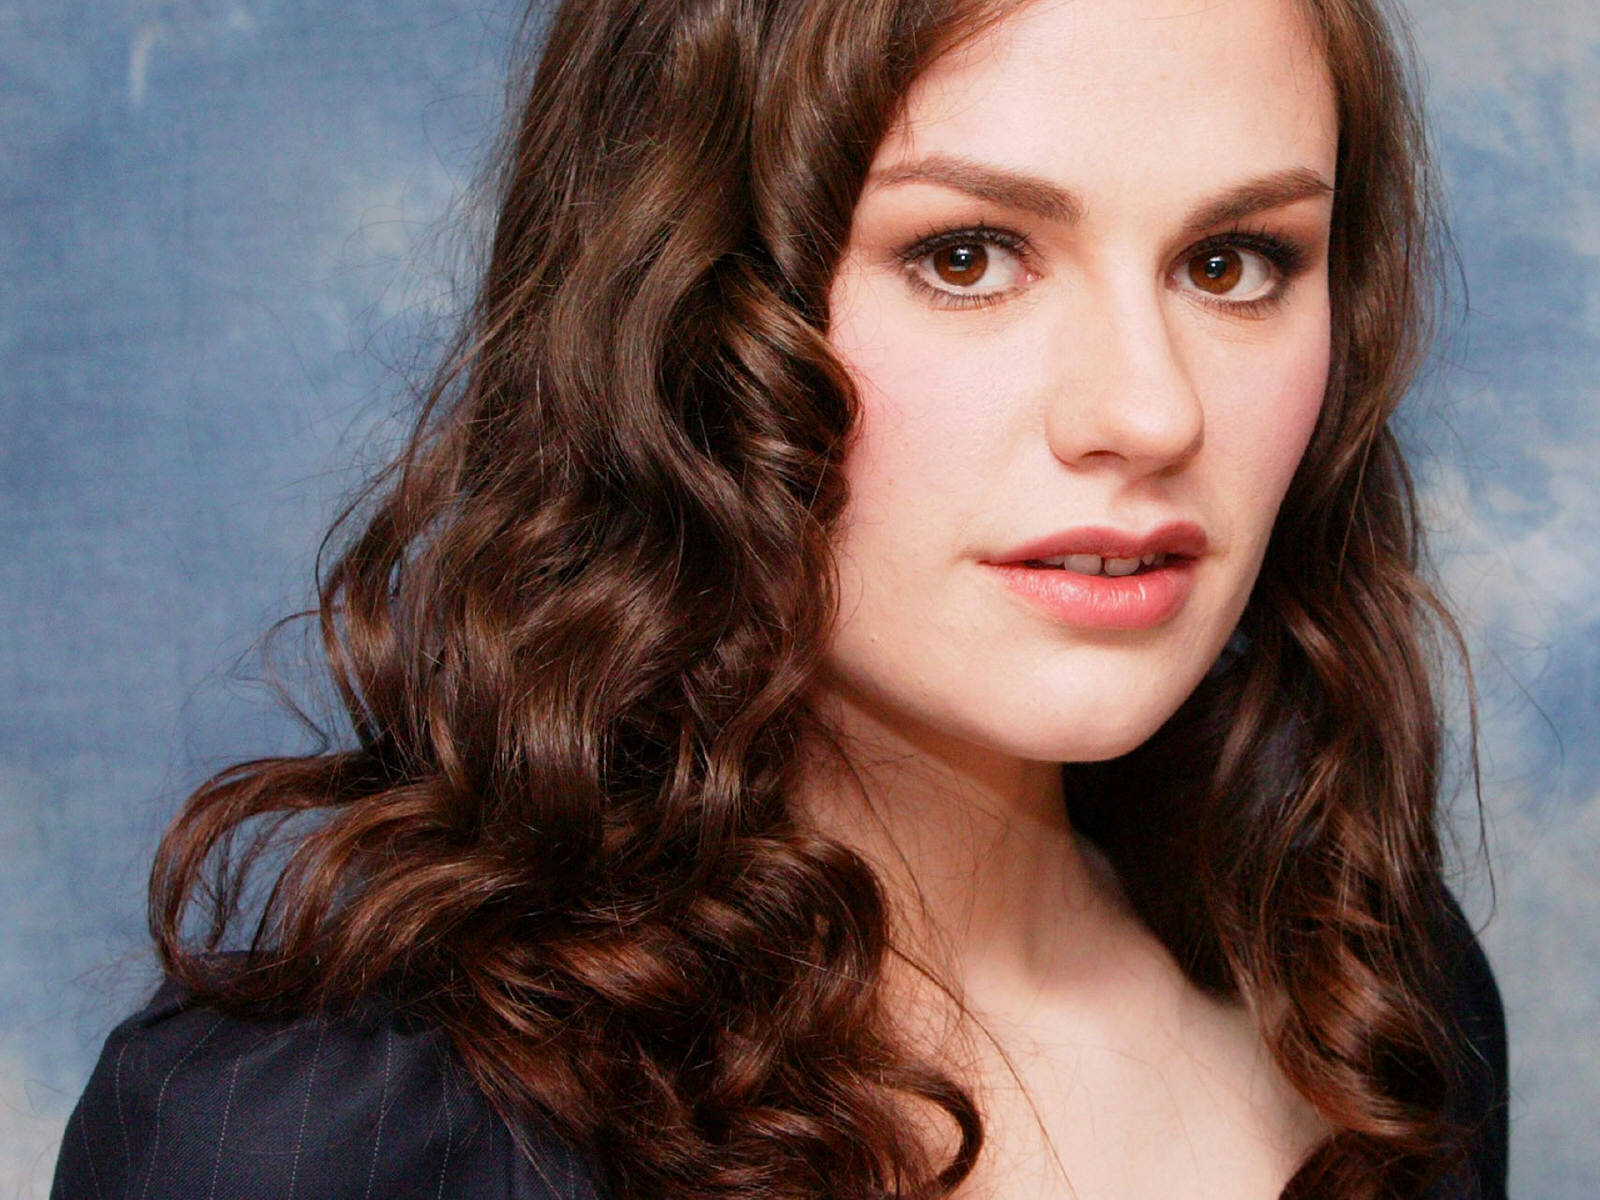 Anna Paquin Wallpapers High Resolution and Quality Download Anna Paquin